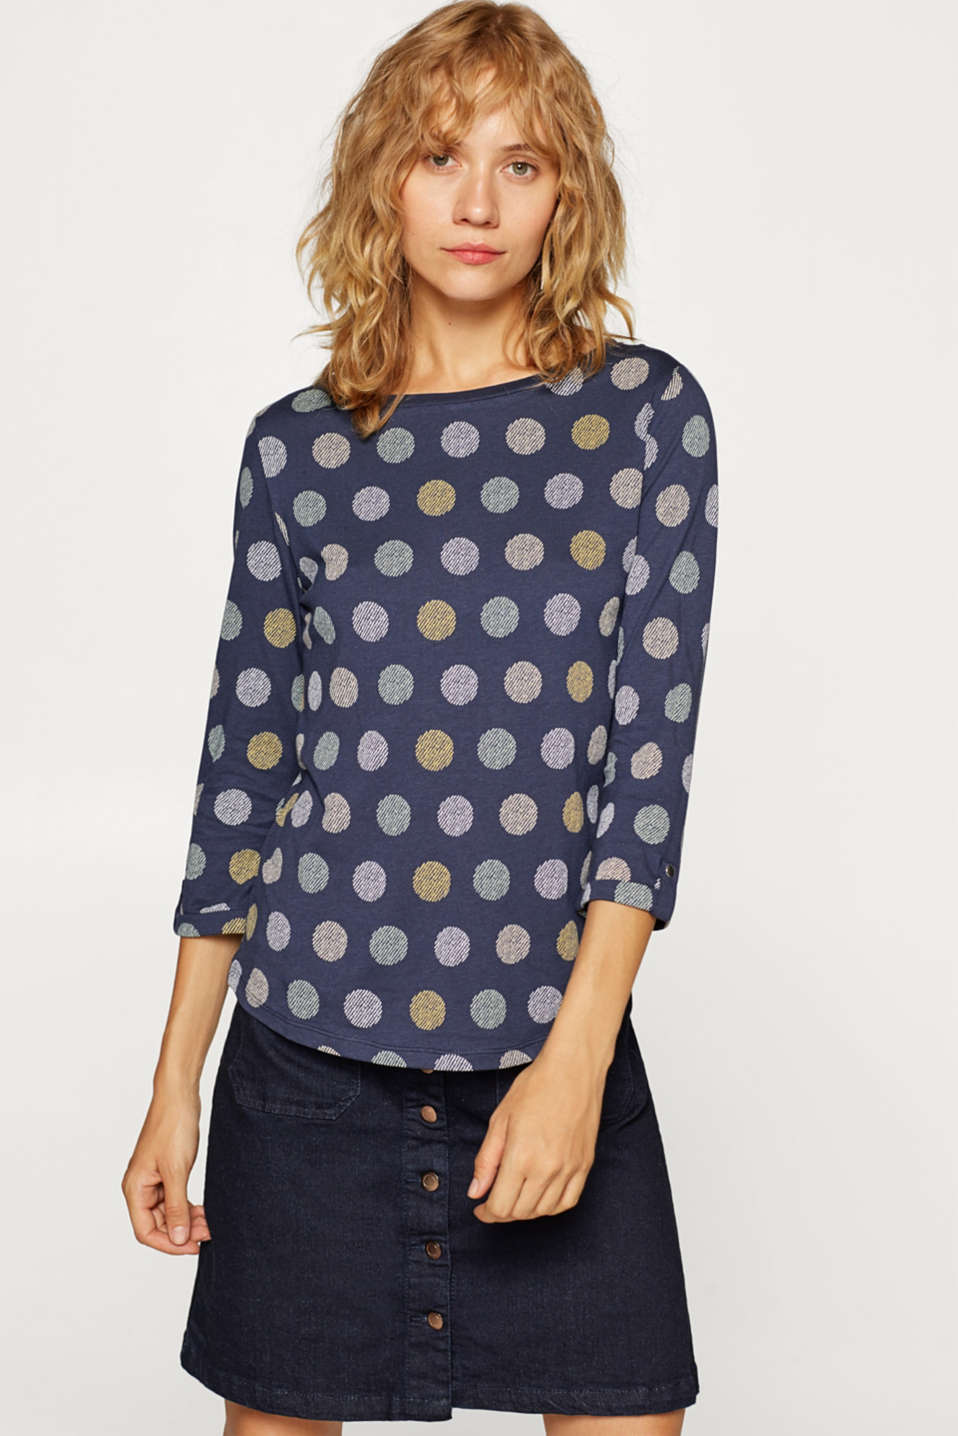 Esprit - Long sleeve top in blended cotton with an all-over print